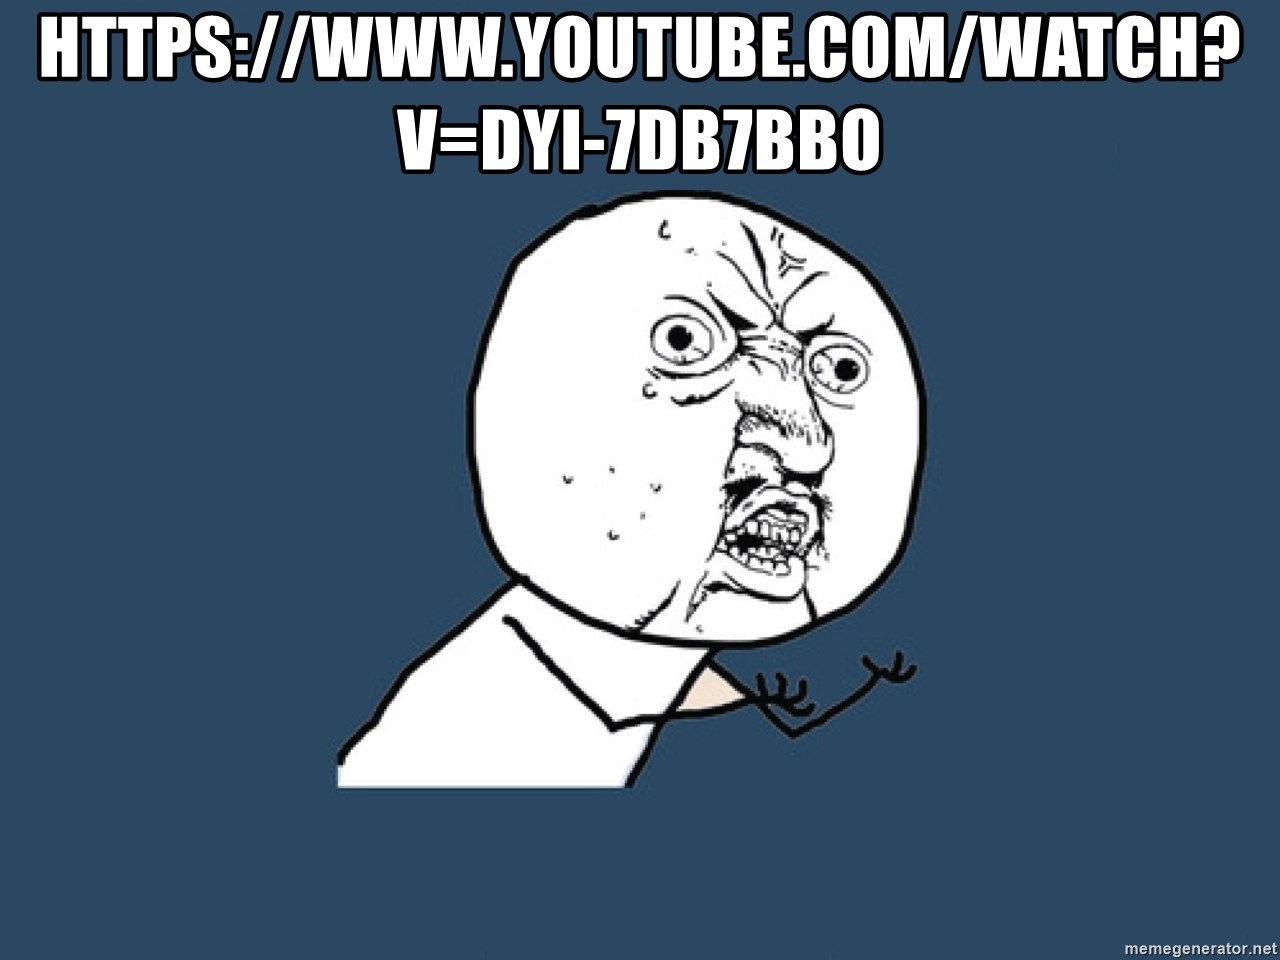 Y U No - https://www.youtube.com/watch?v=Dyi-7DB7Bbo